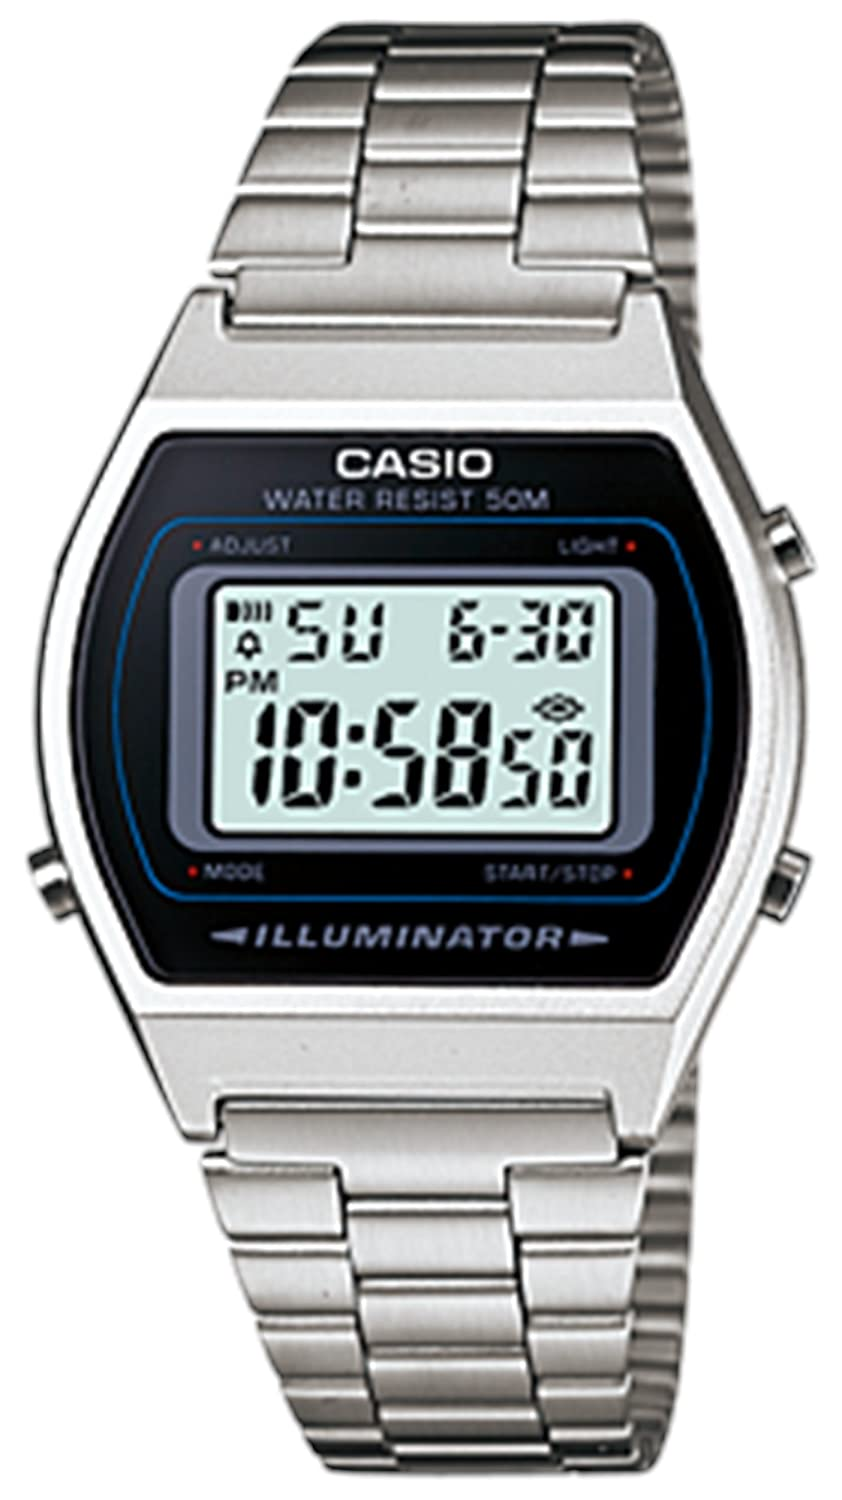 Casio B640 Wd 1 A Men's Silver Digital Retro Stainless Steel Watch by Casio